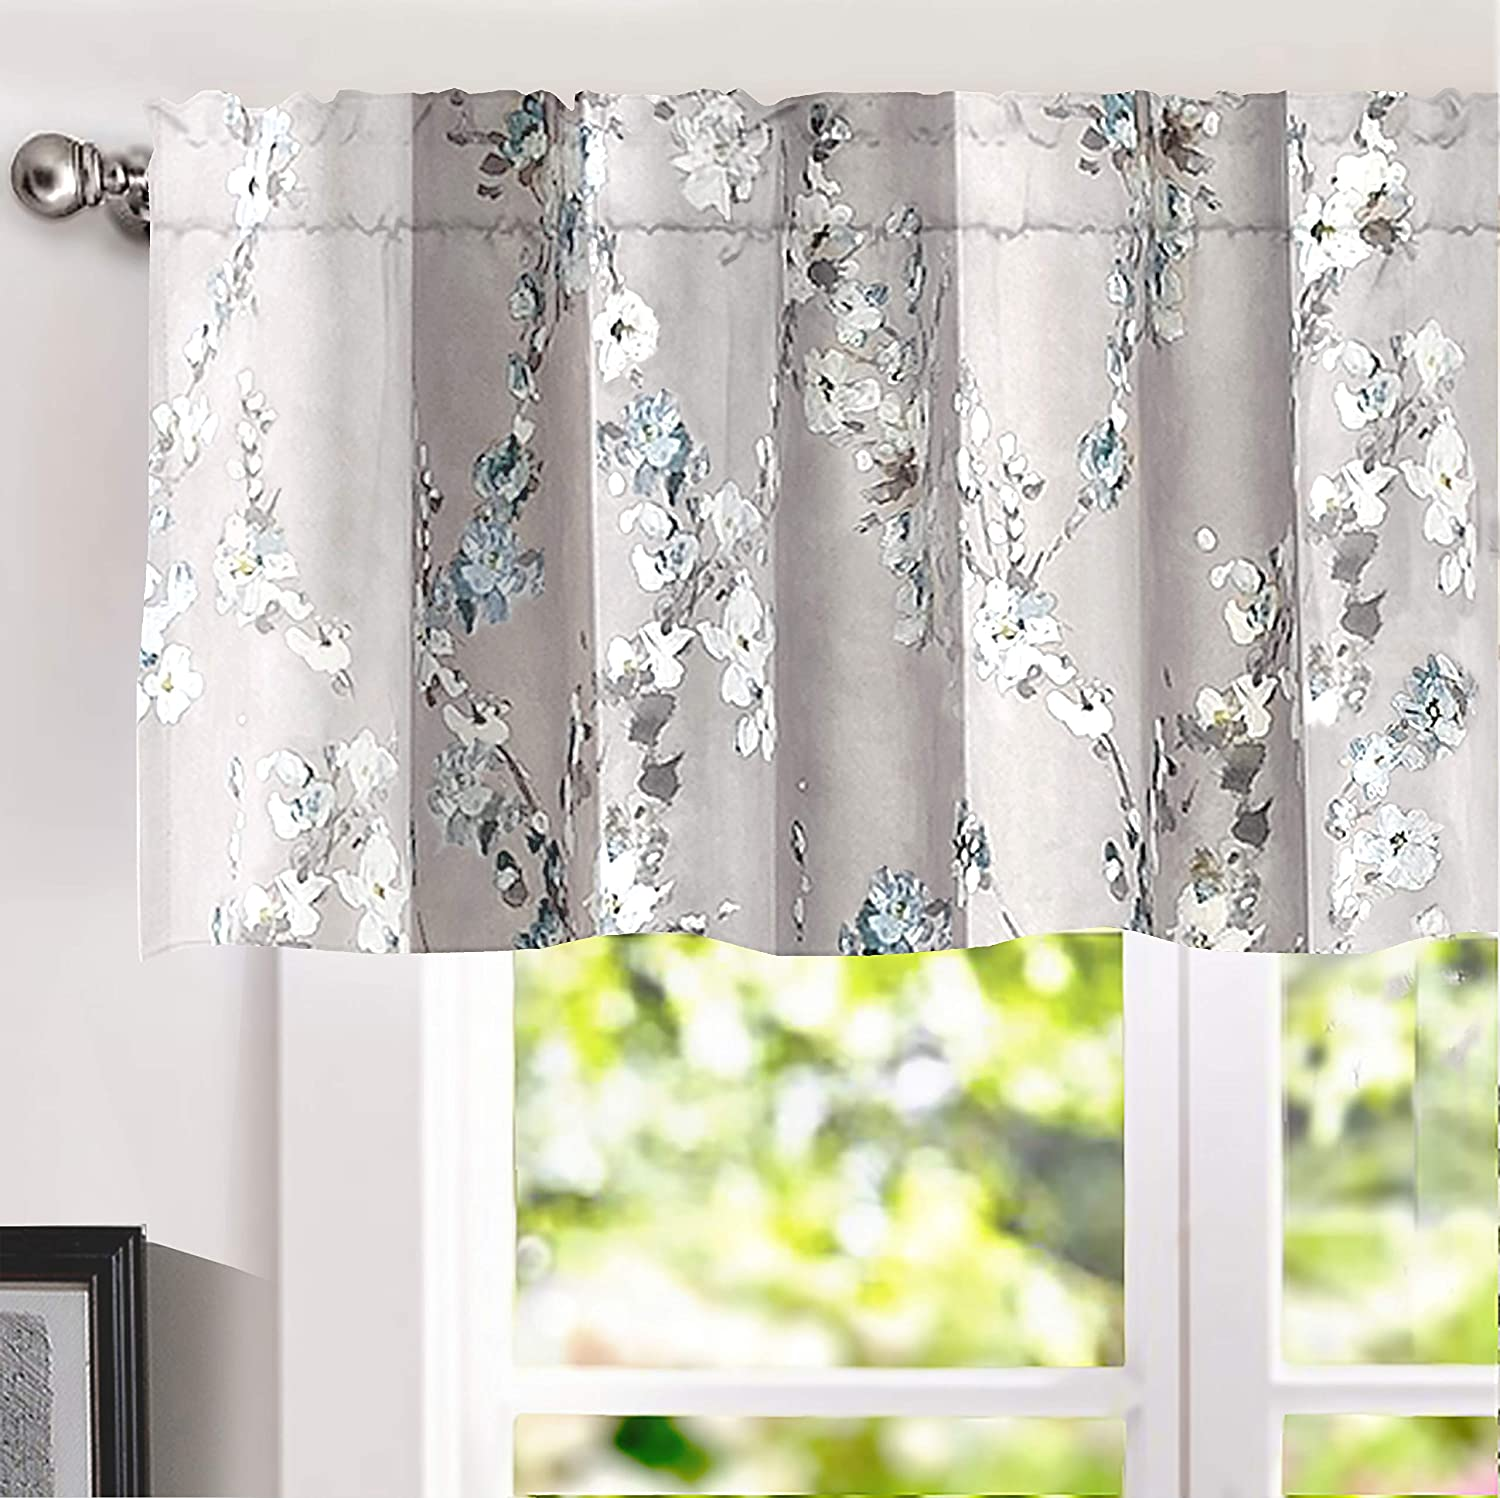 DriftAway Mackenzie Abstract Floral Pattern Window Treatment Valance Rod Pocket 50 Inch by 18 Inch Plus 2 Inch Header Blue Gray